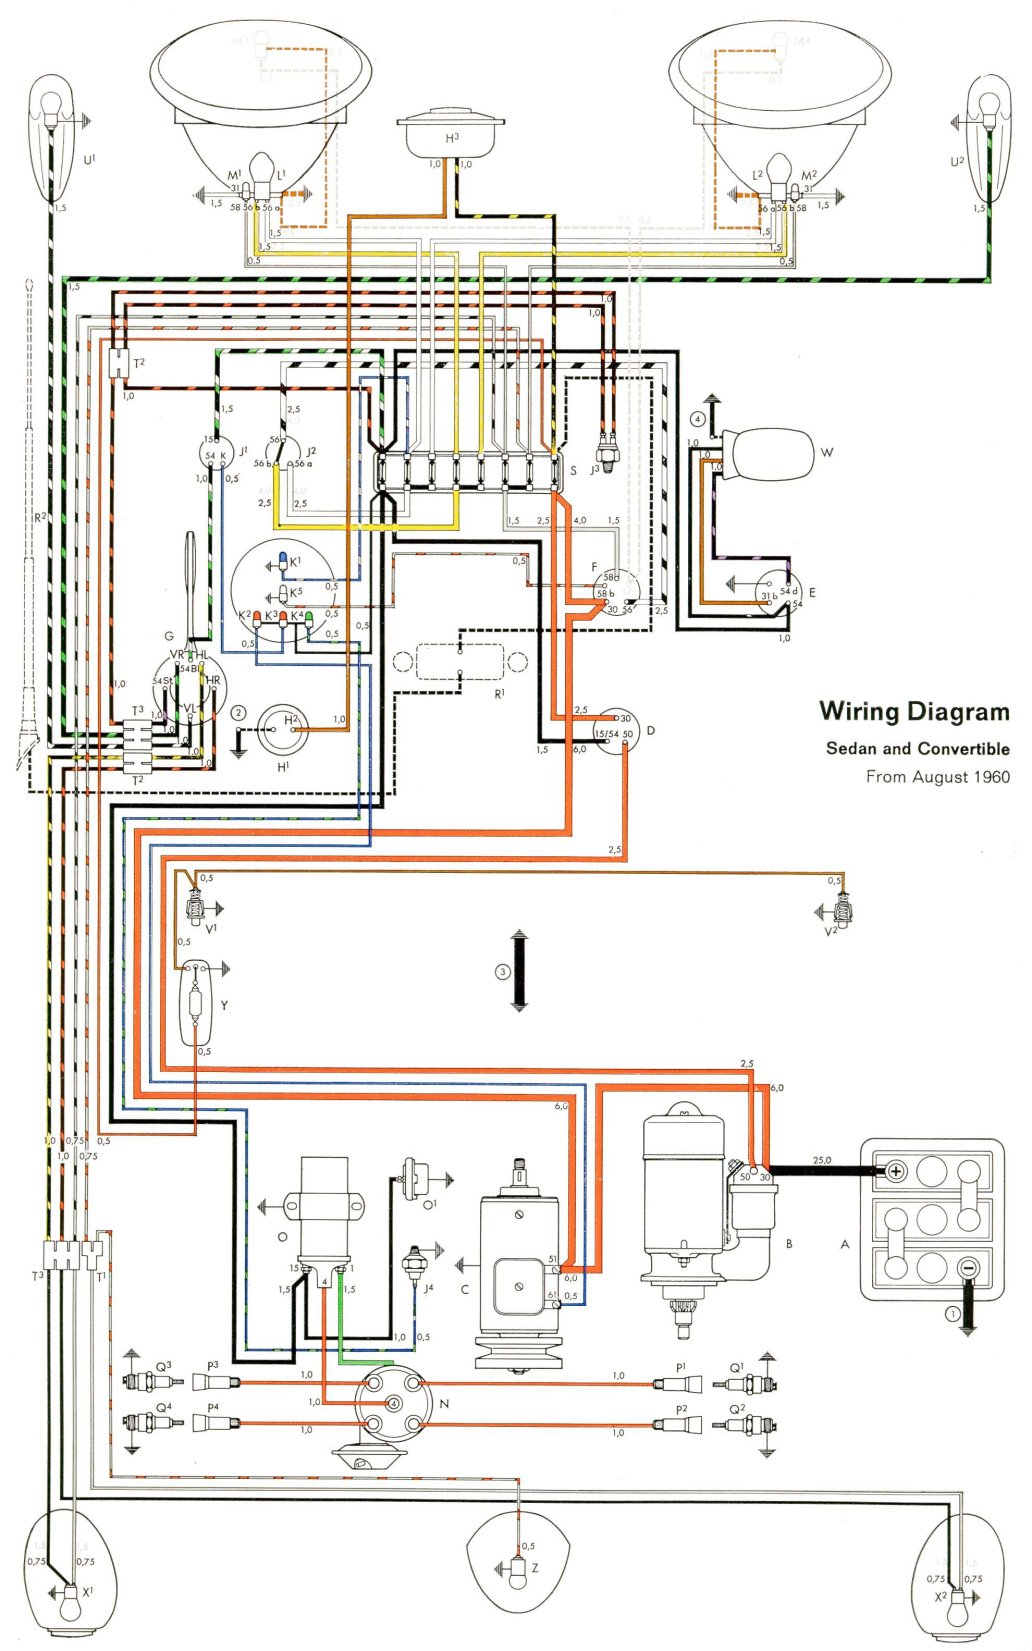 bug_61 1961 beetle wiring diagram thegoldenbug com vw alternator wiring diagram at gsmx.co